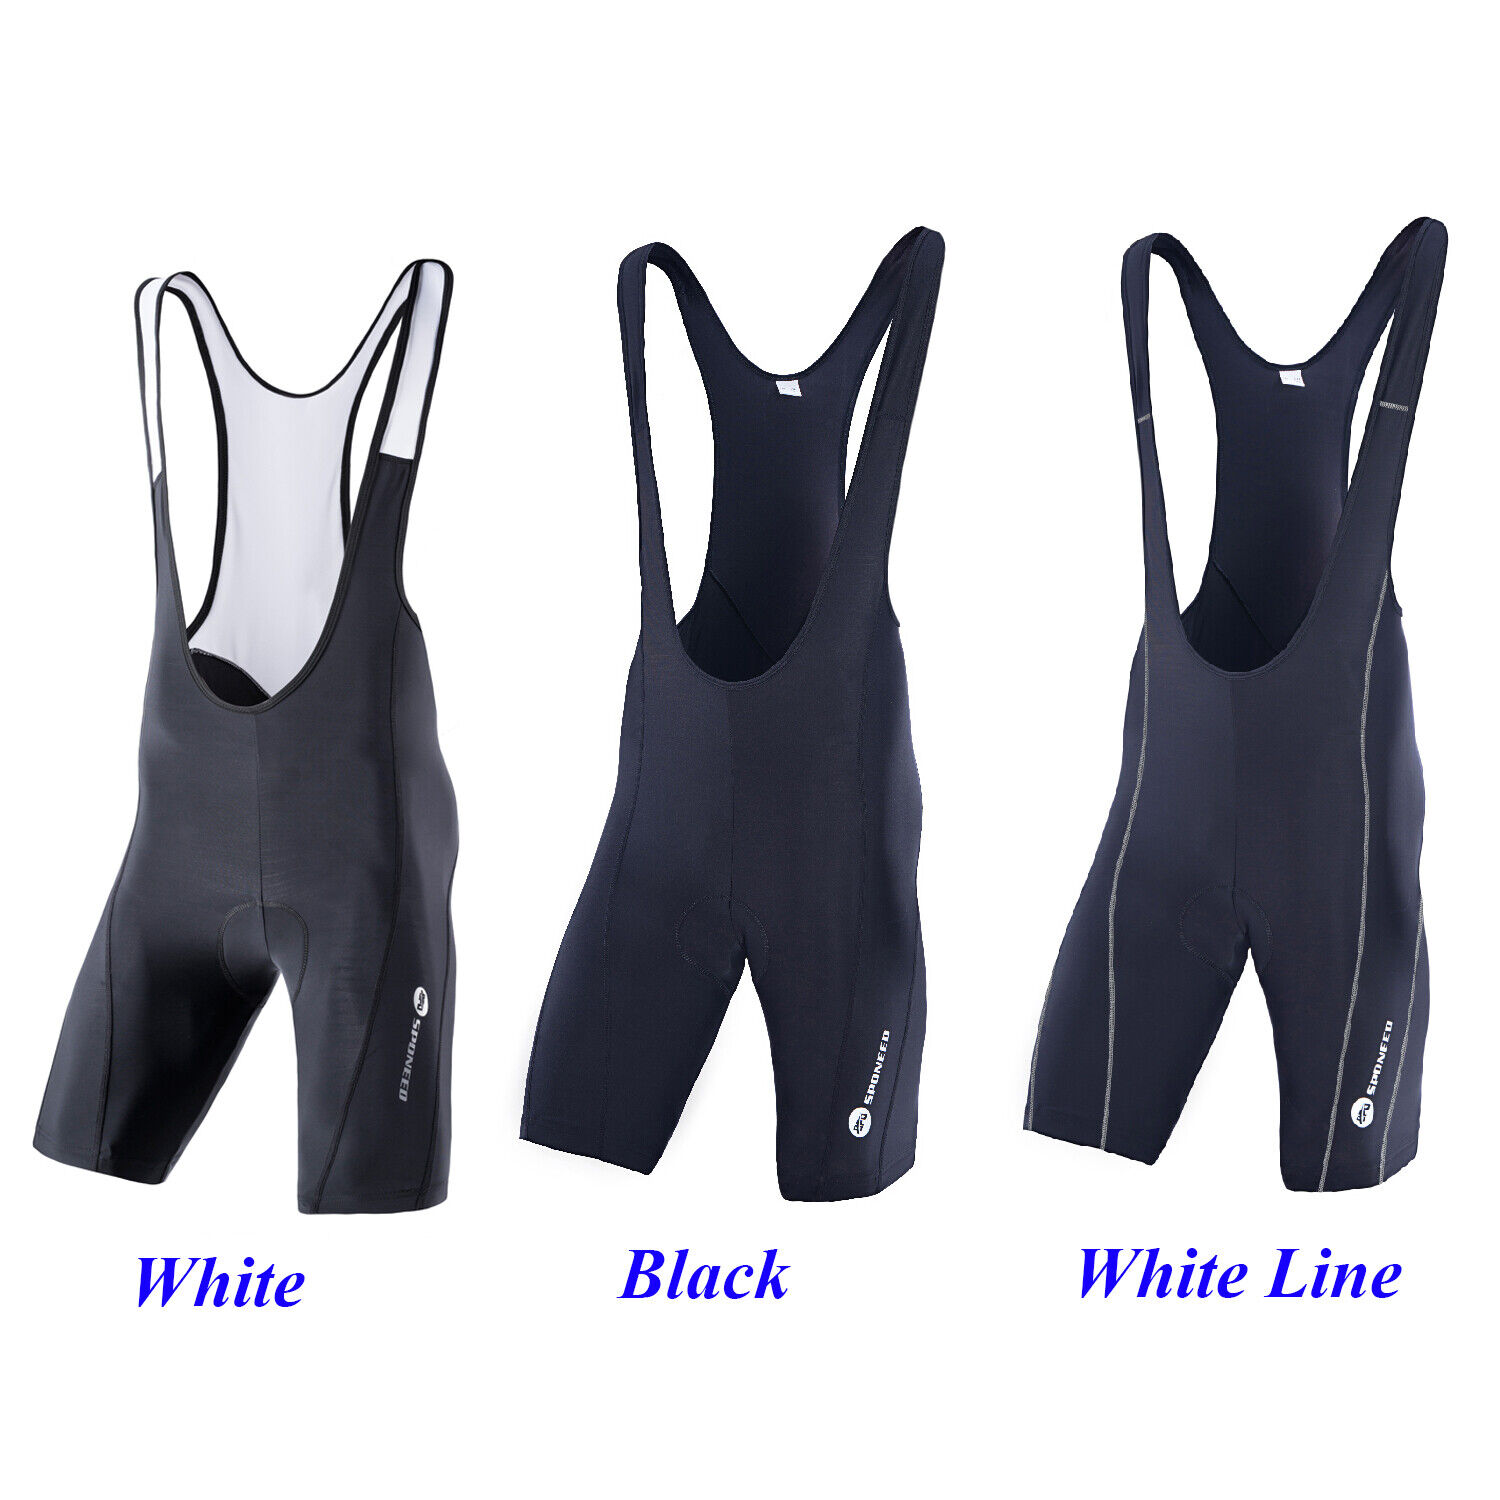 Cycling Bib Shorts for Men Race Fit Stretchy Spandex Bibs Smooth Pro Bike Tights